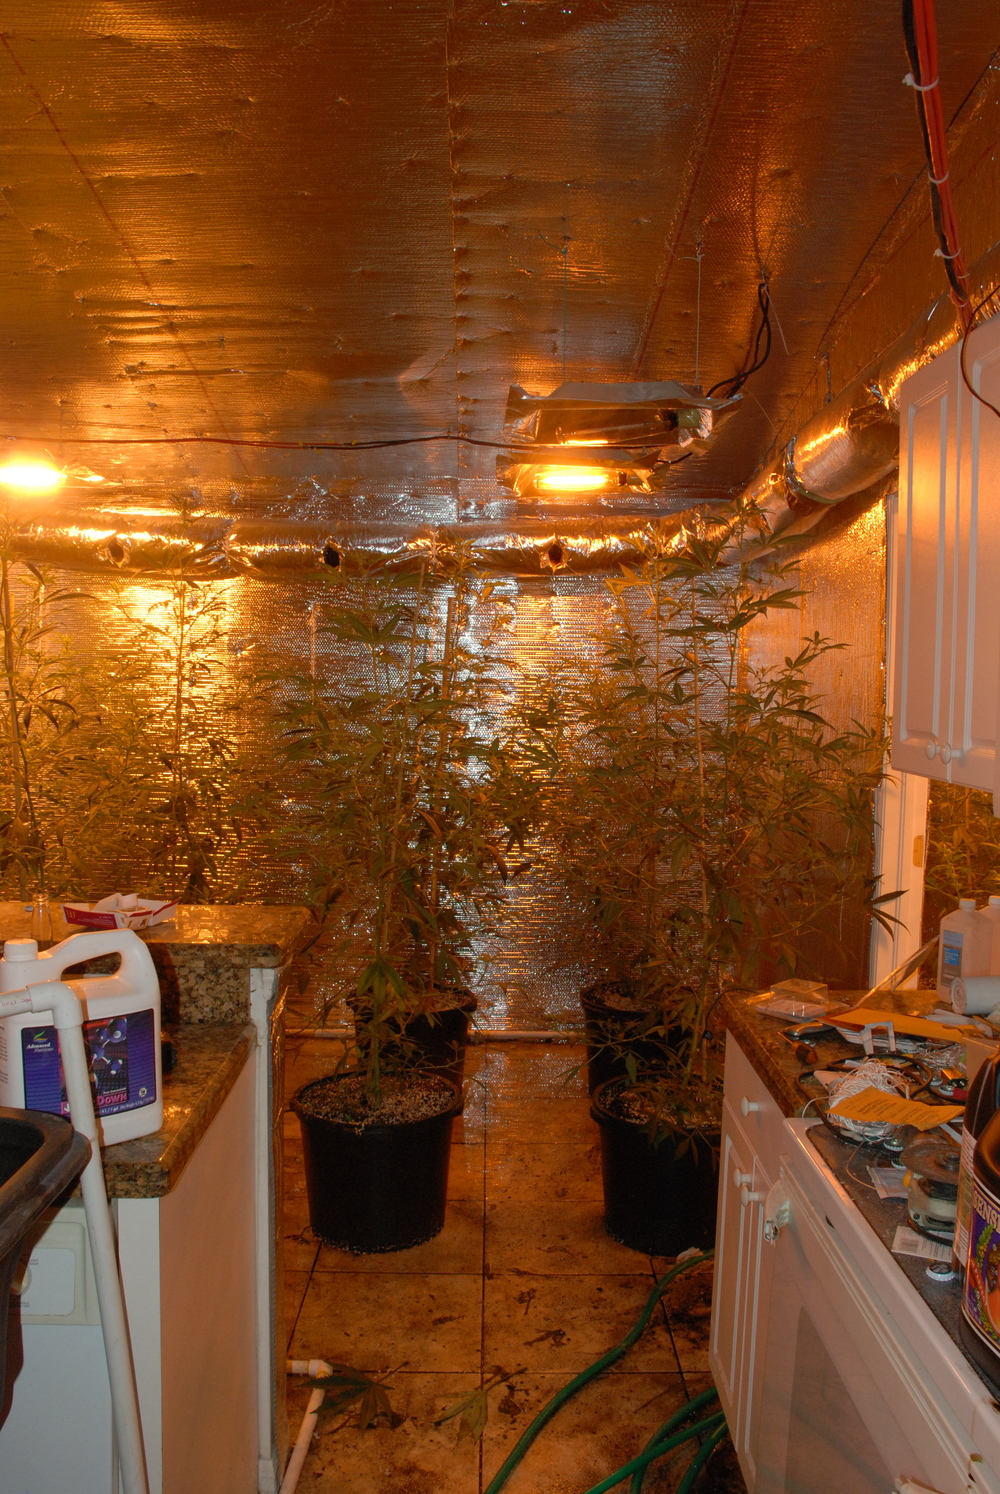 The entire house was converted to either grow or support the grow operation.